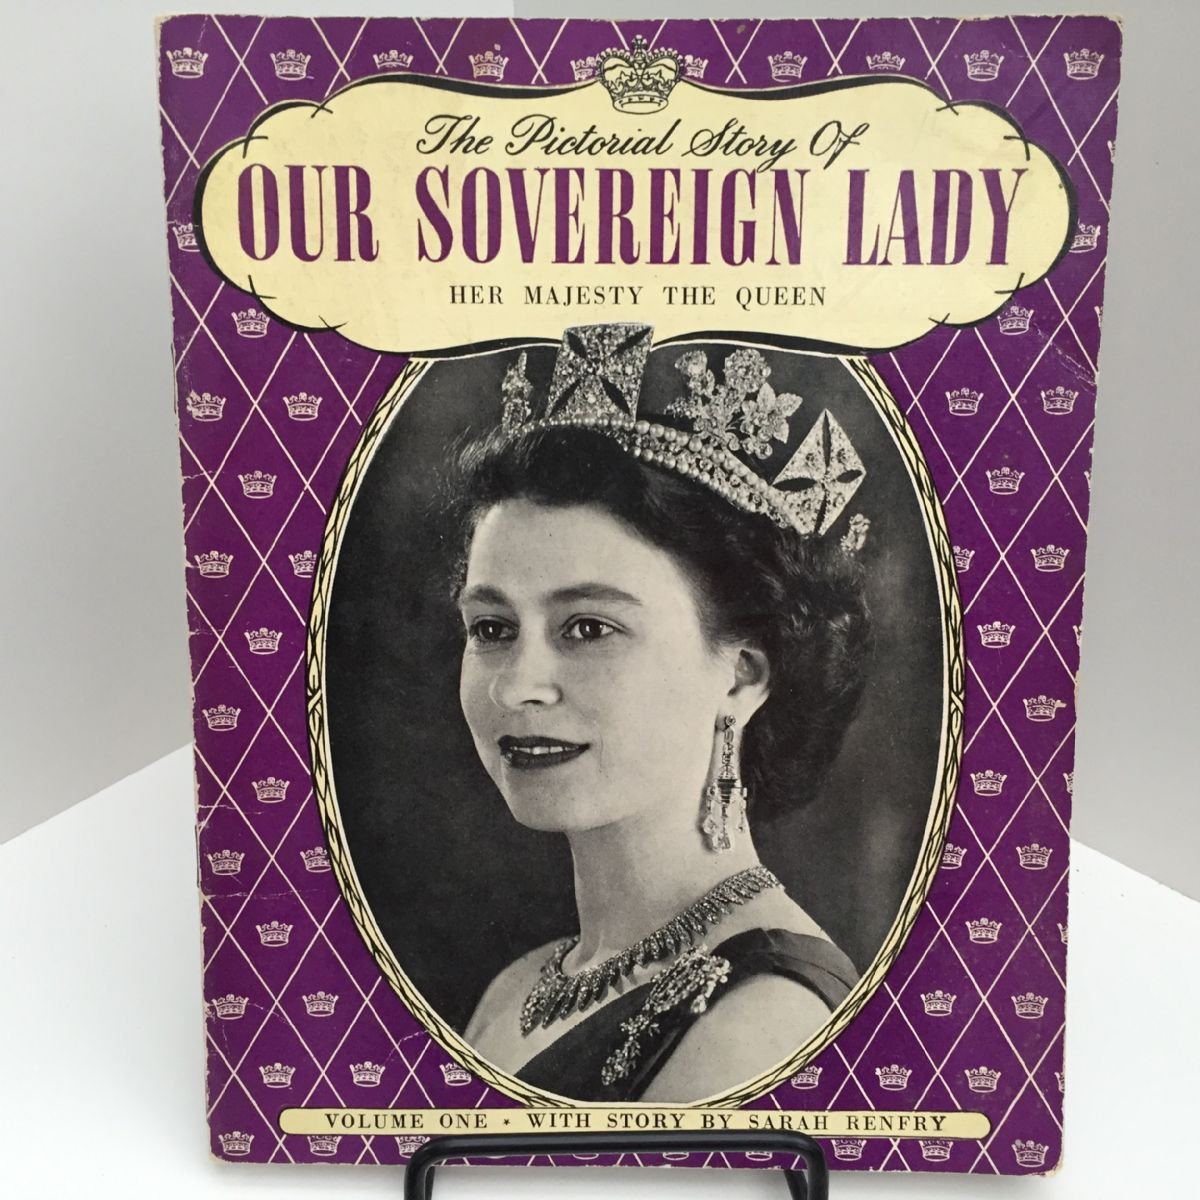 The Pictorial Story of Our Sovereign Lady